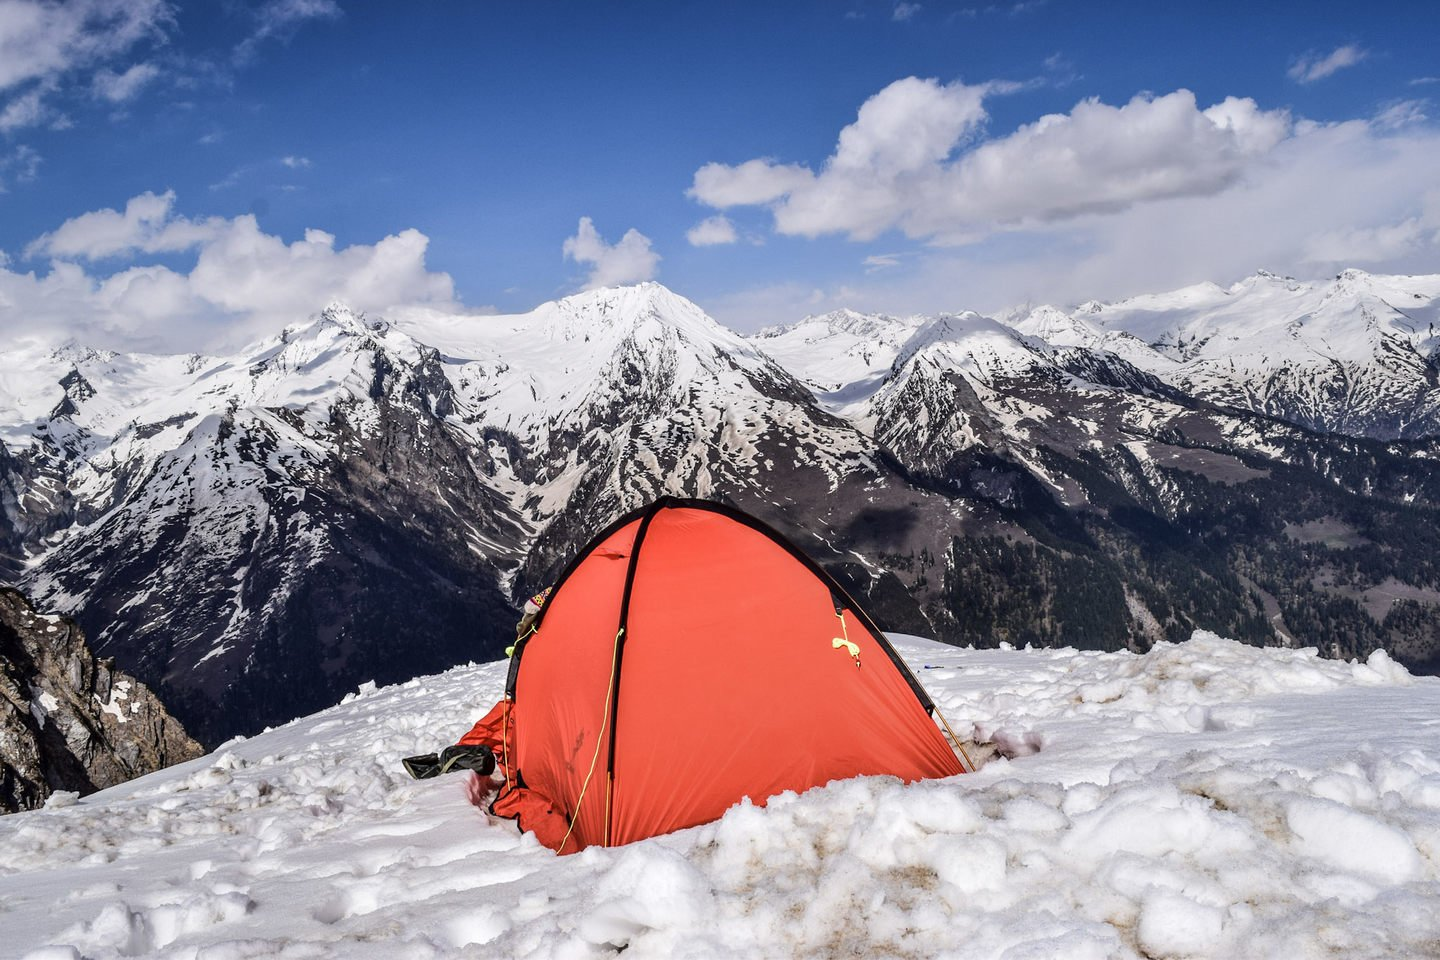 Bangalore Mountaineering Club - Official Home Page